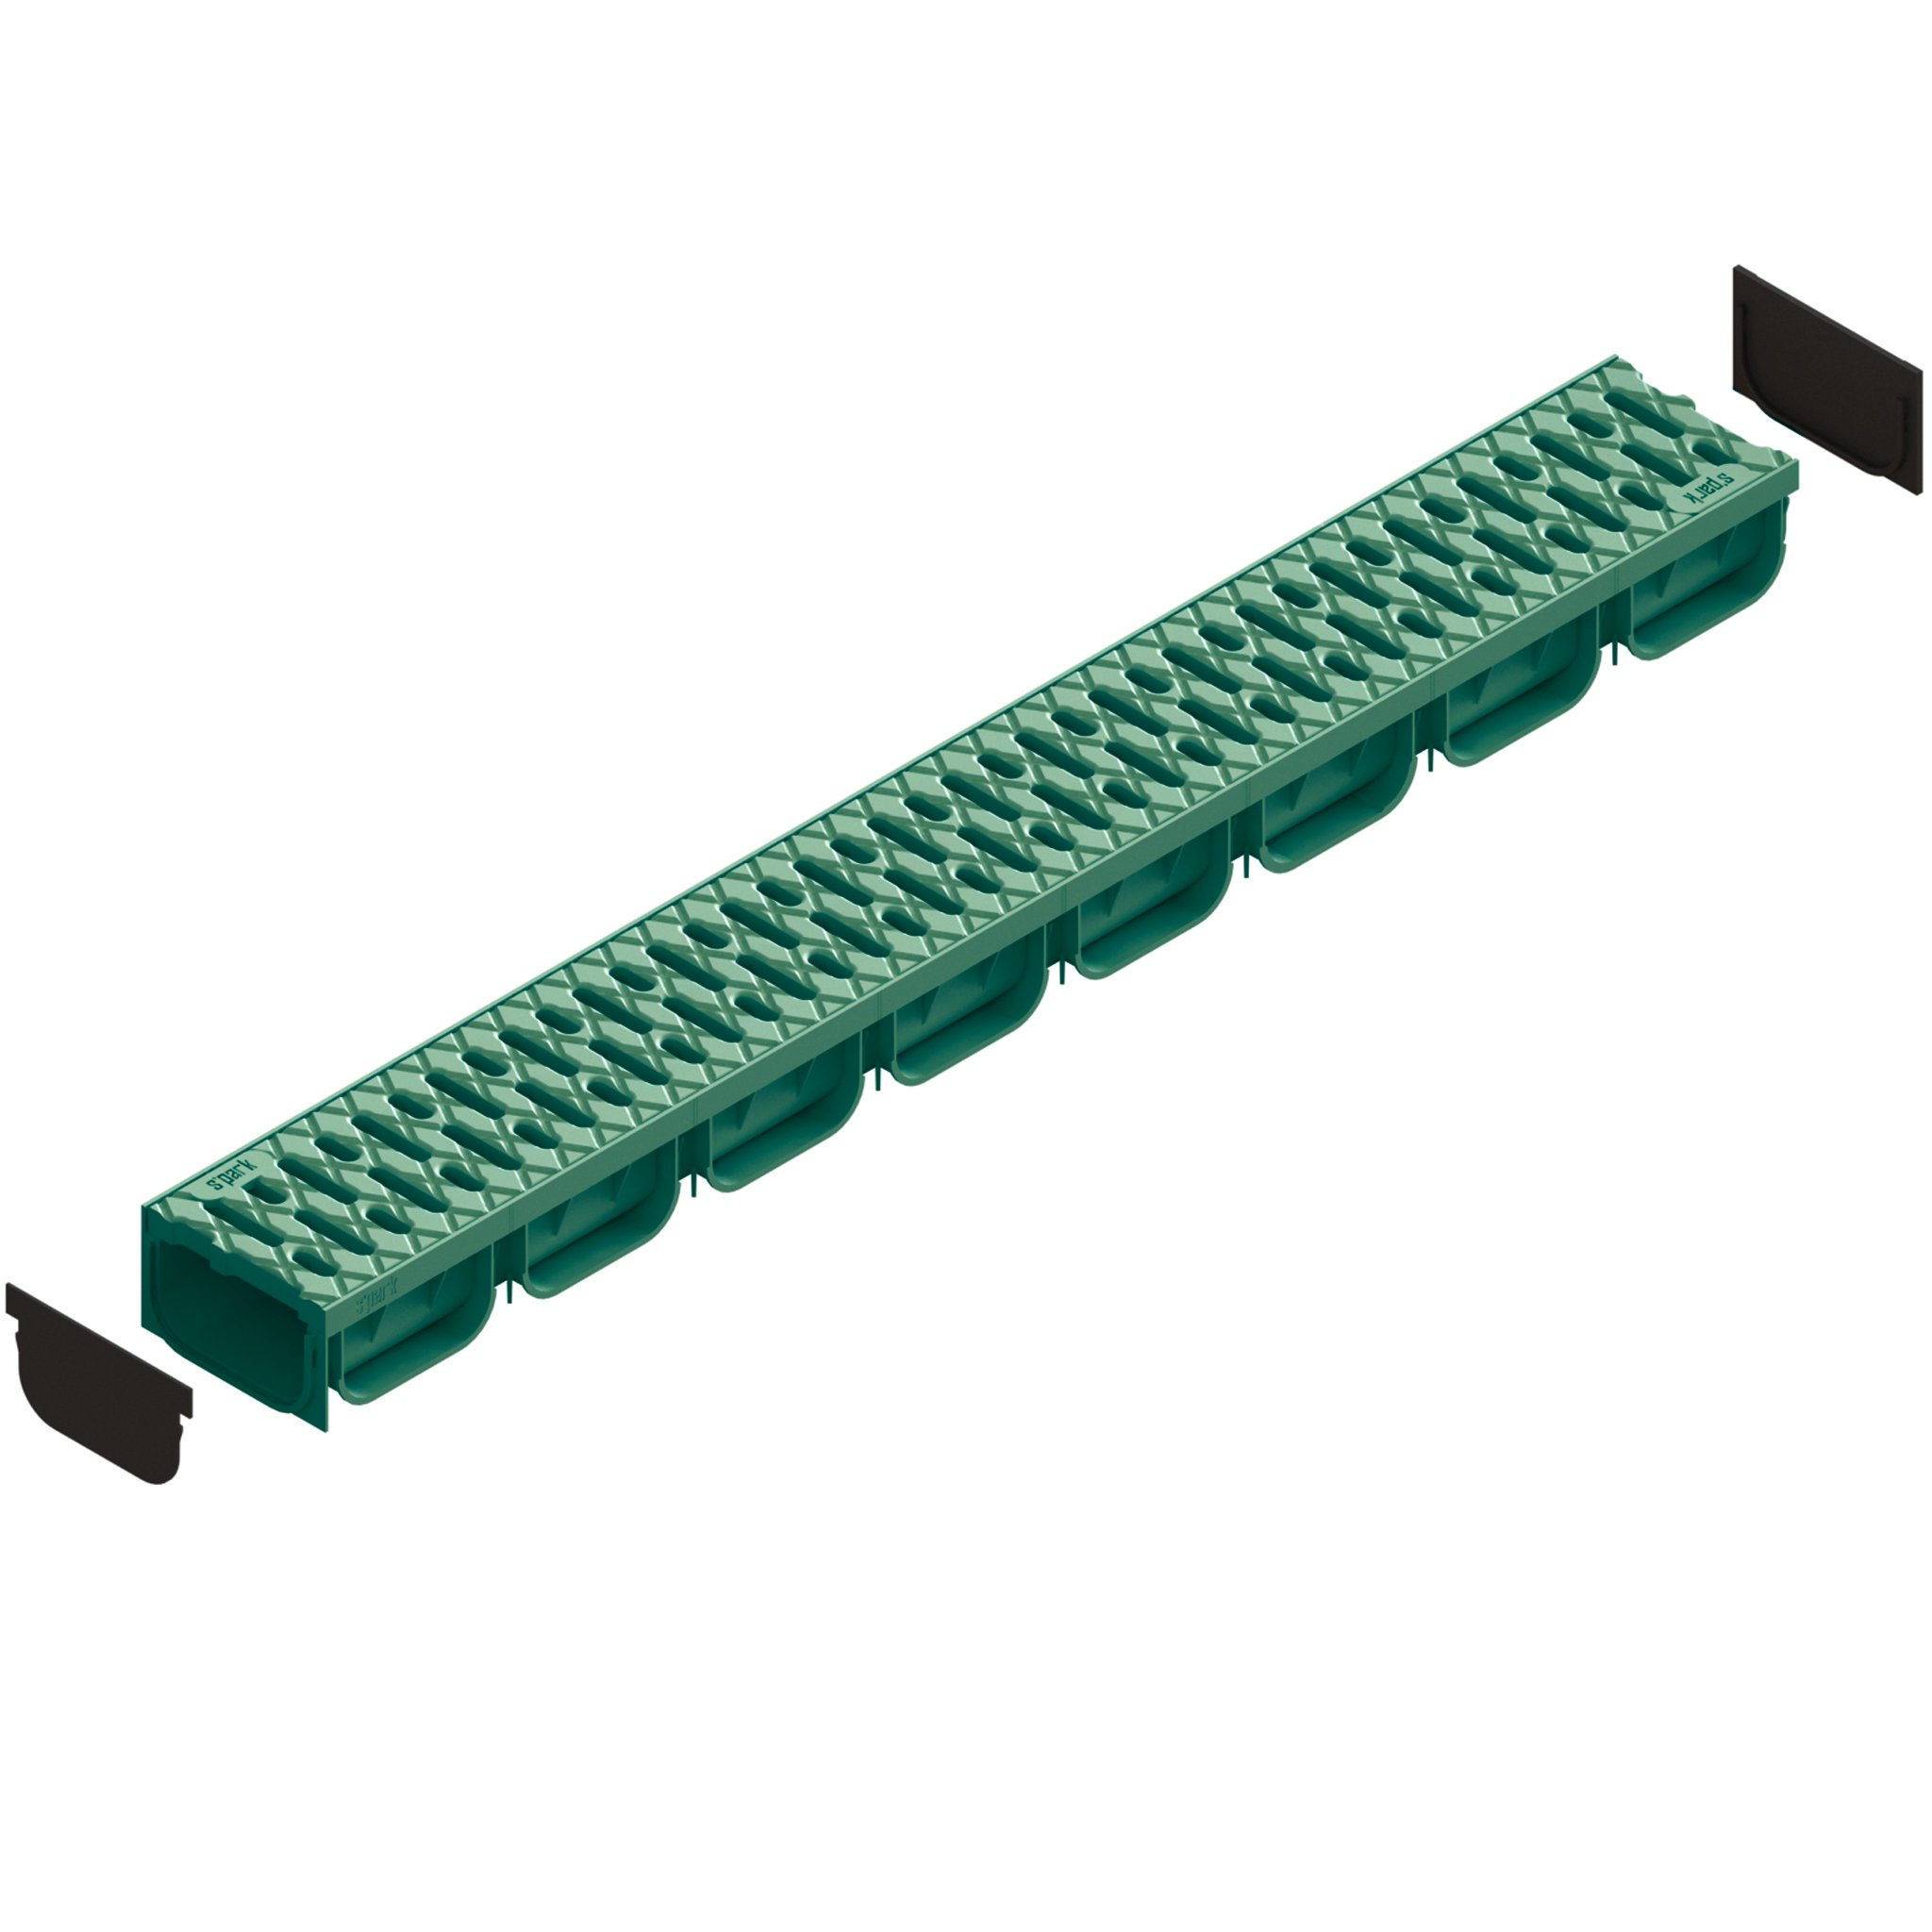 Standartpark - 4 Inch Trench Drain System With Grate - GREEN - Spark 2 (1)